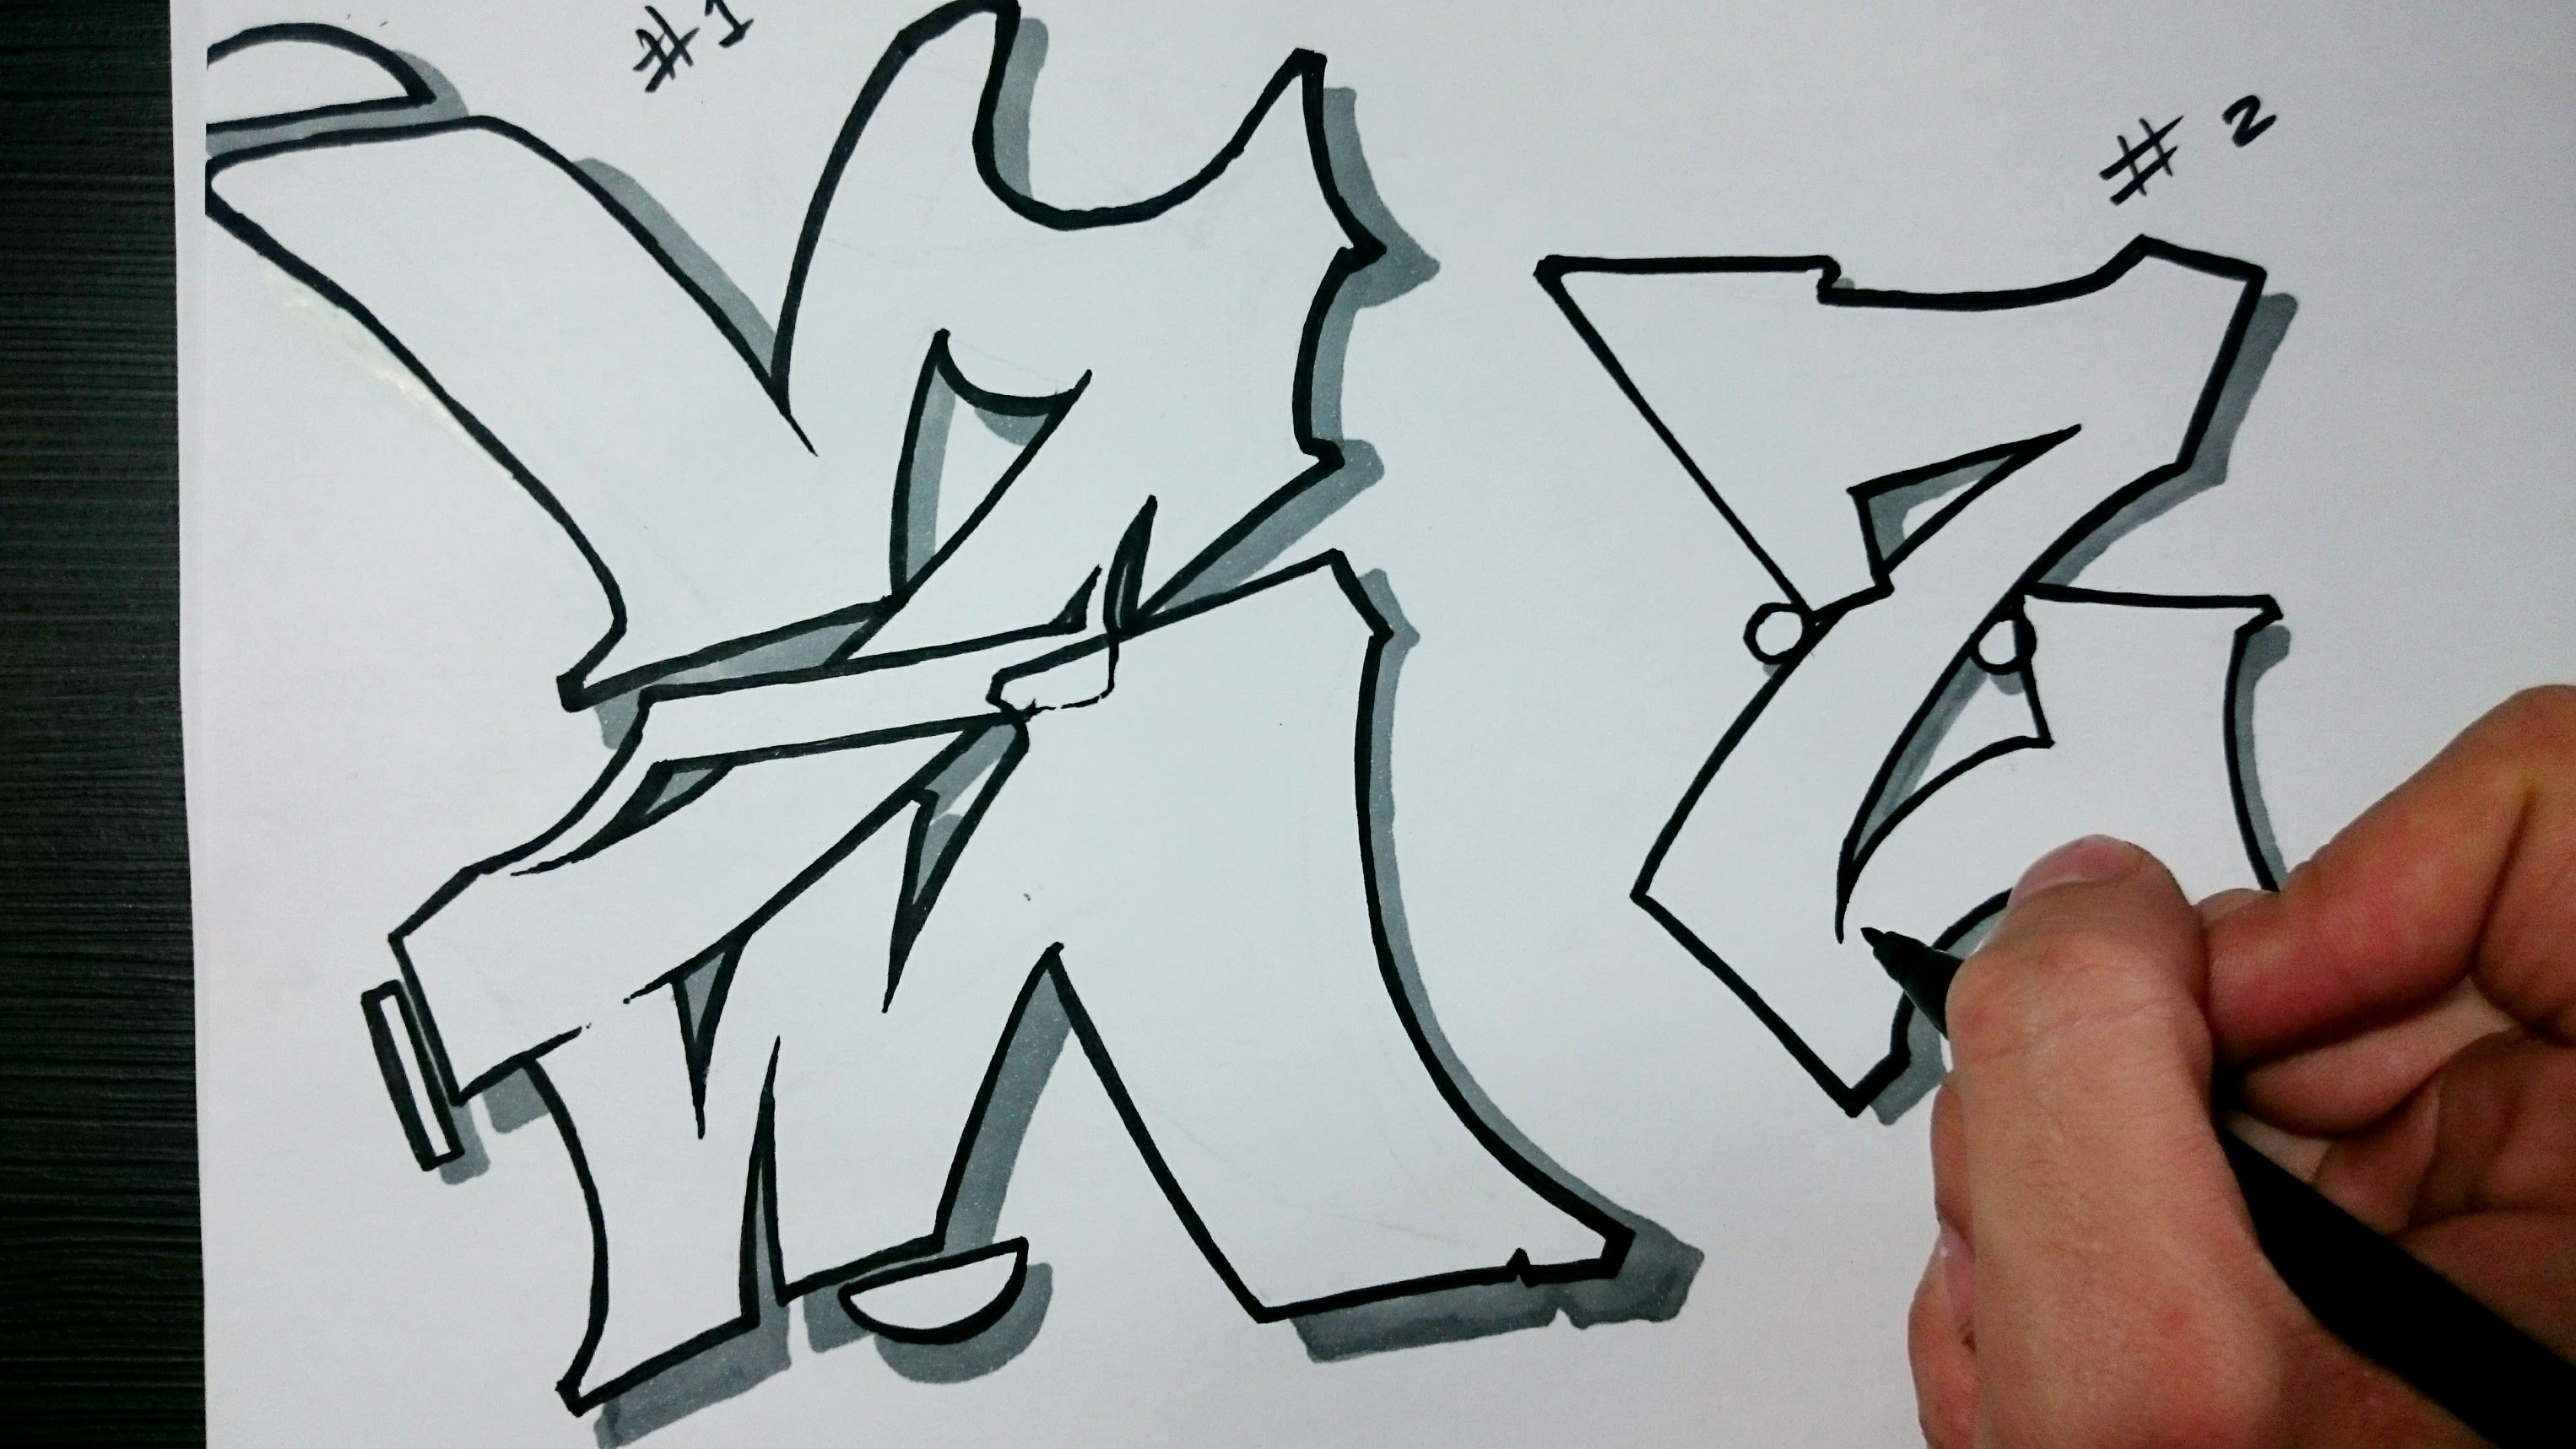 3052x1717 Art Drawing Graffiti A To Z In 3d How To Draw Graffiti Letter Z